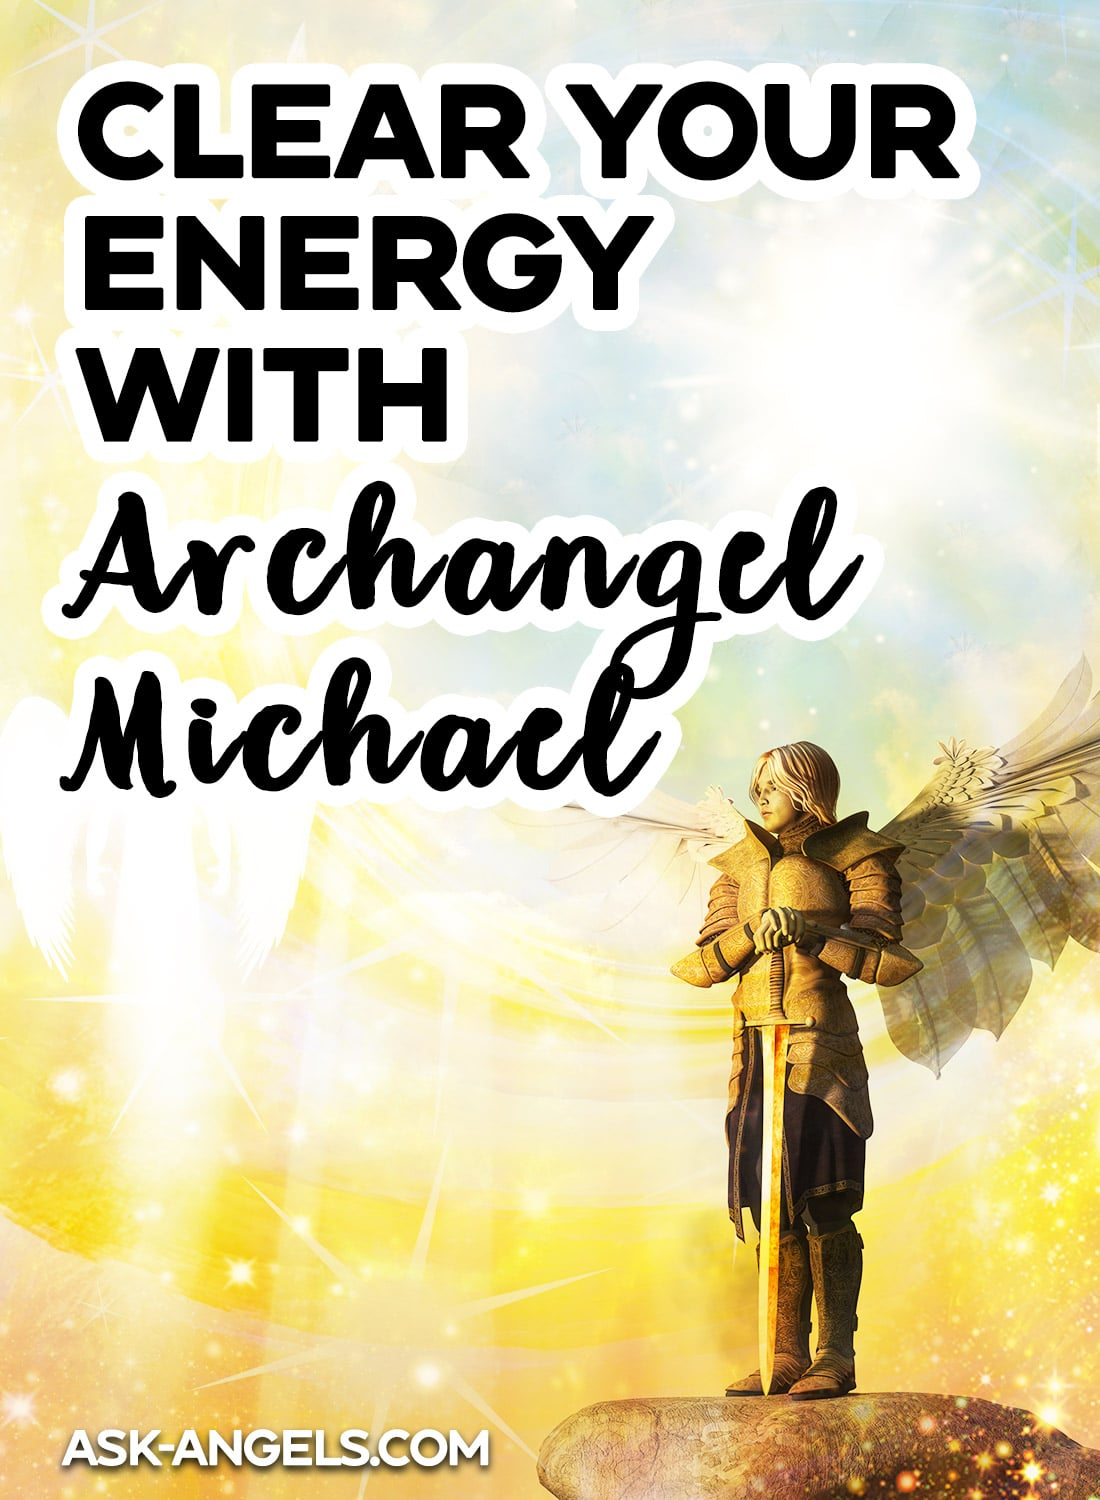 Clear Your Energy with Archangel Michael